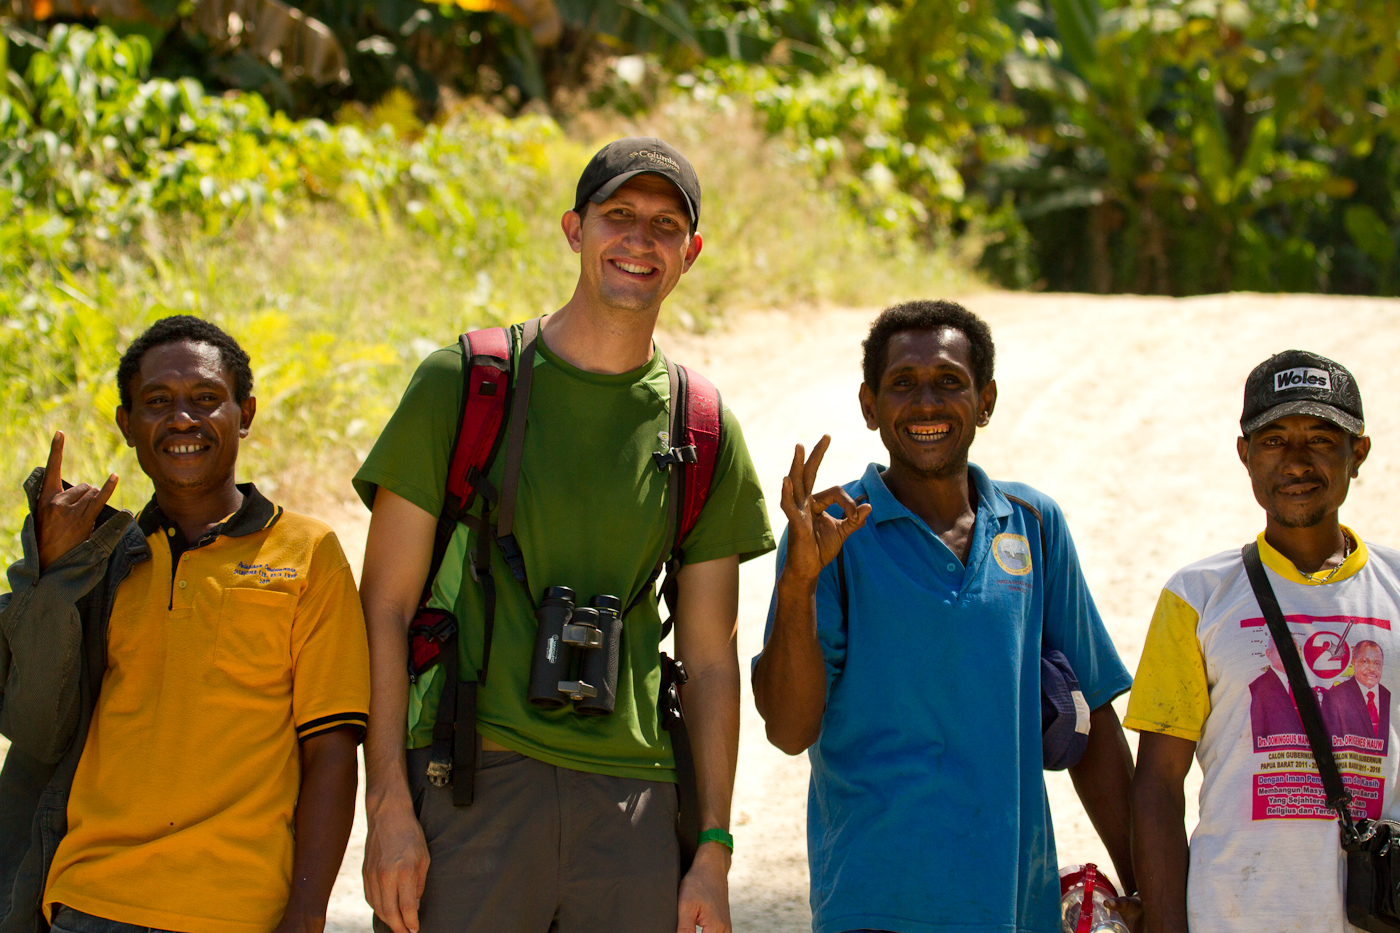 Our guides for the Birds of Paradise in Sapokren. Someone in this picture felt very tall.